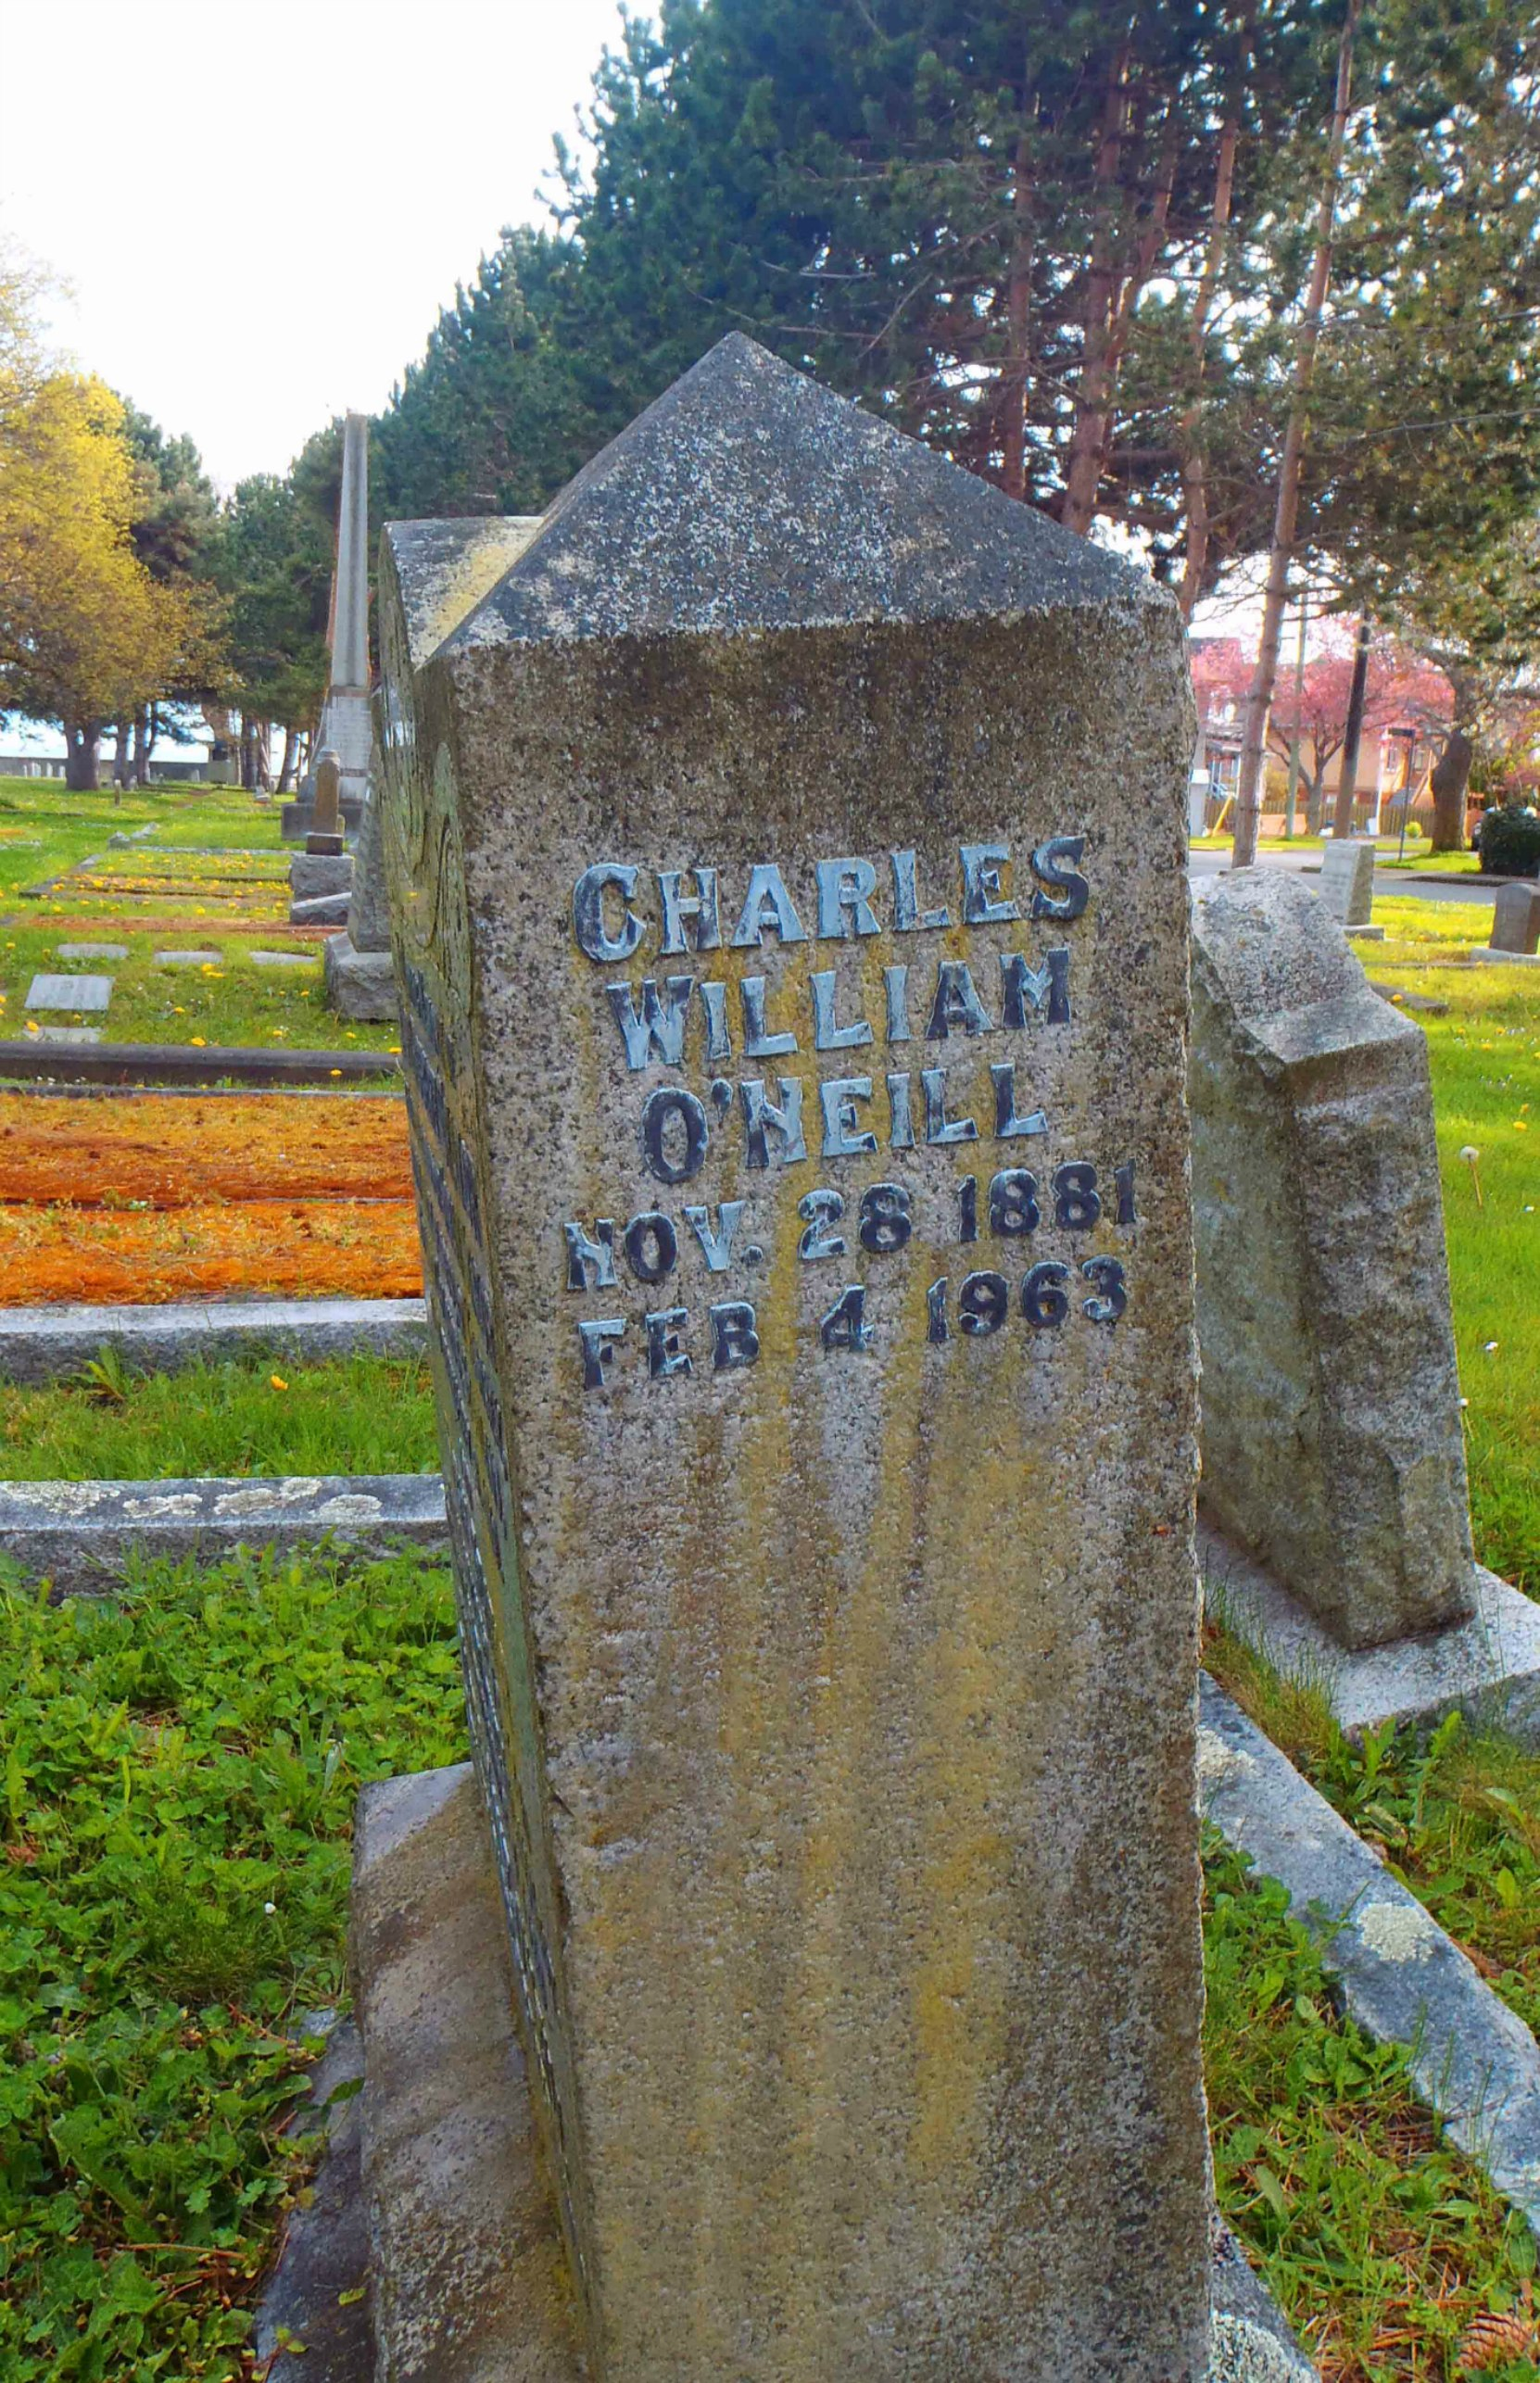 Charles William O'Neill grave inscription, Ross Bay cemetery, Victoria, B.C.